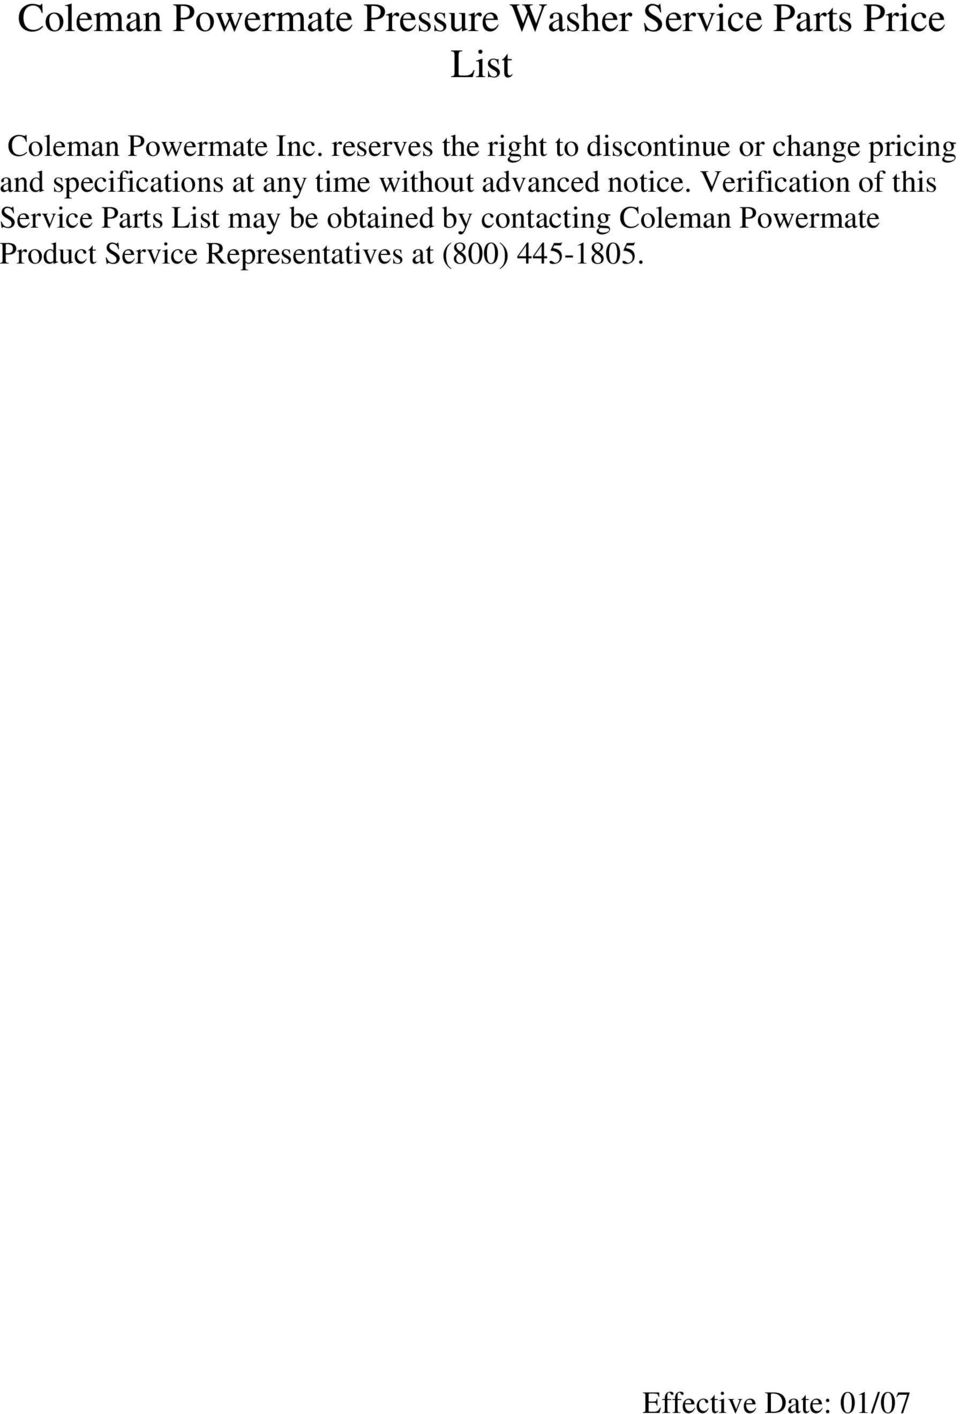 coleman powermate pressure washer service parts price list pdf